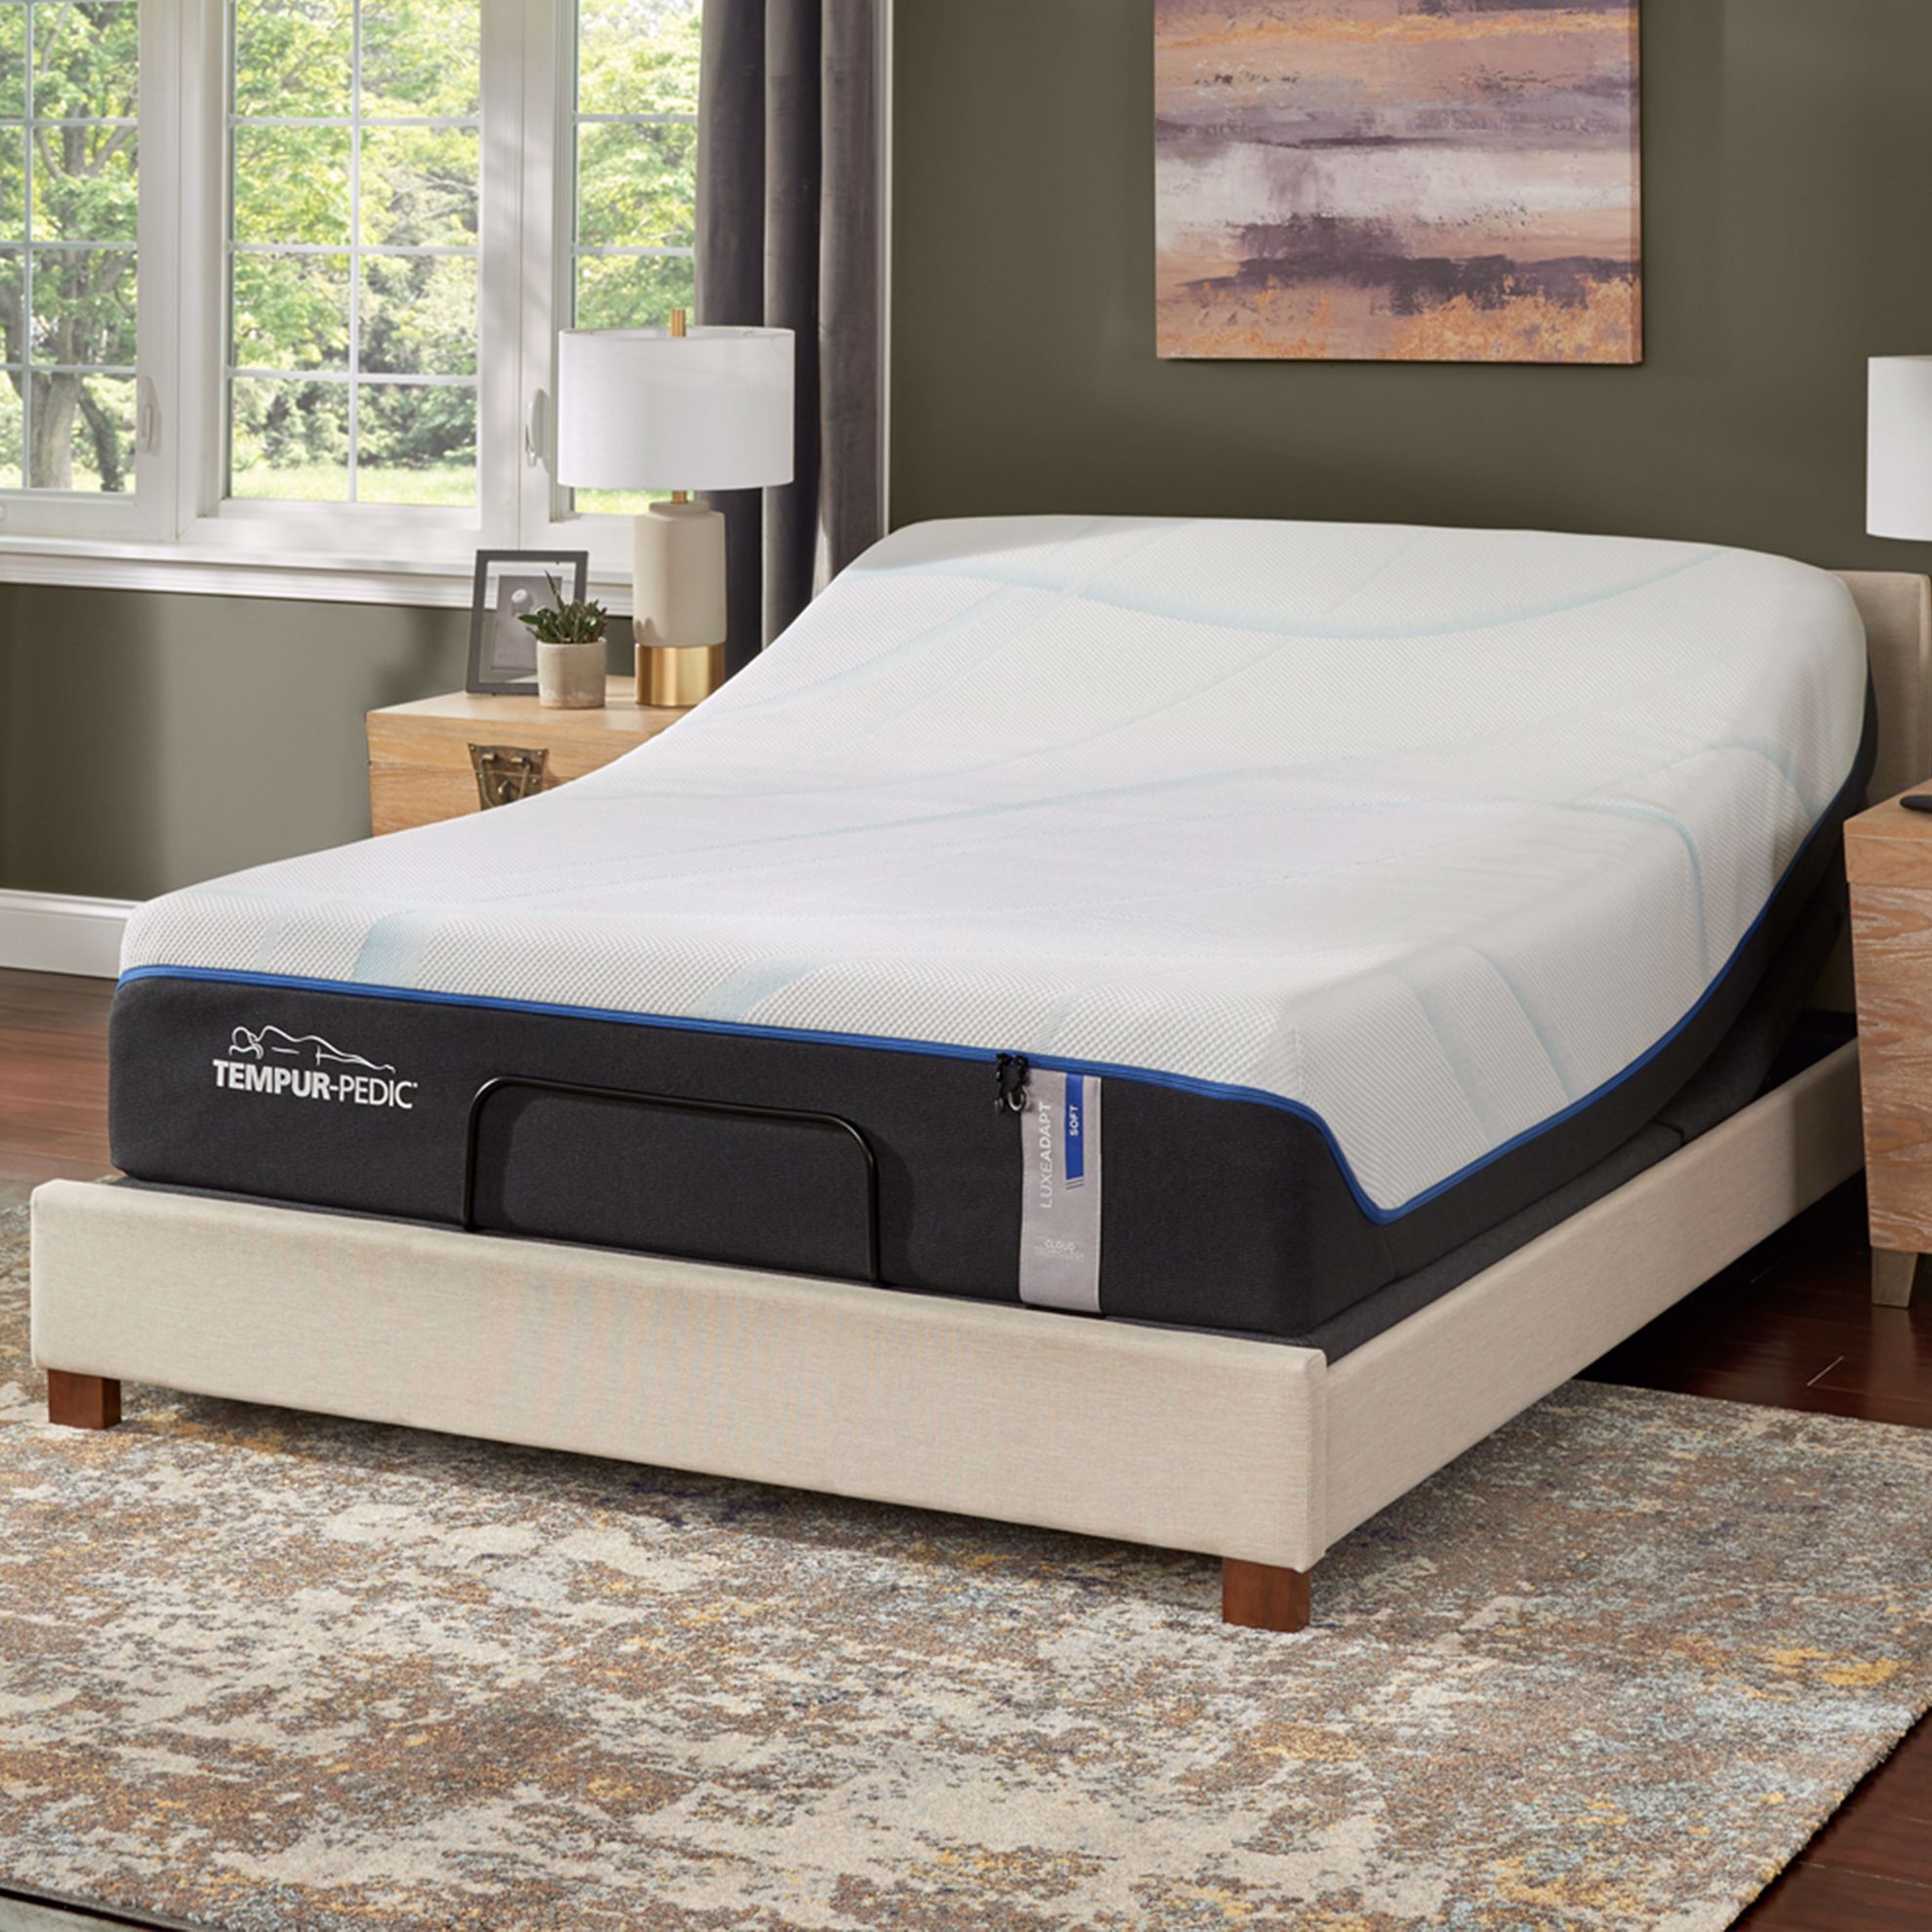 Picture of Tempur-Pedic Ergo Extend Twin XL Adjustable Smart Base